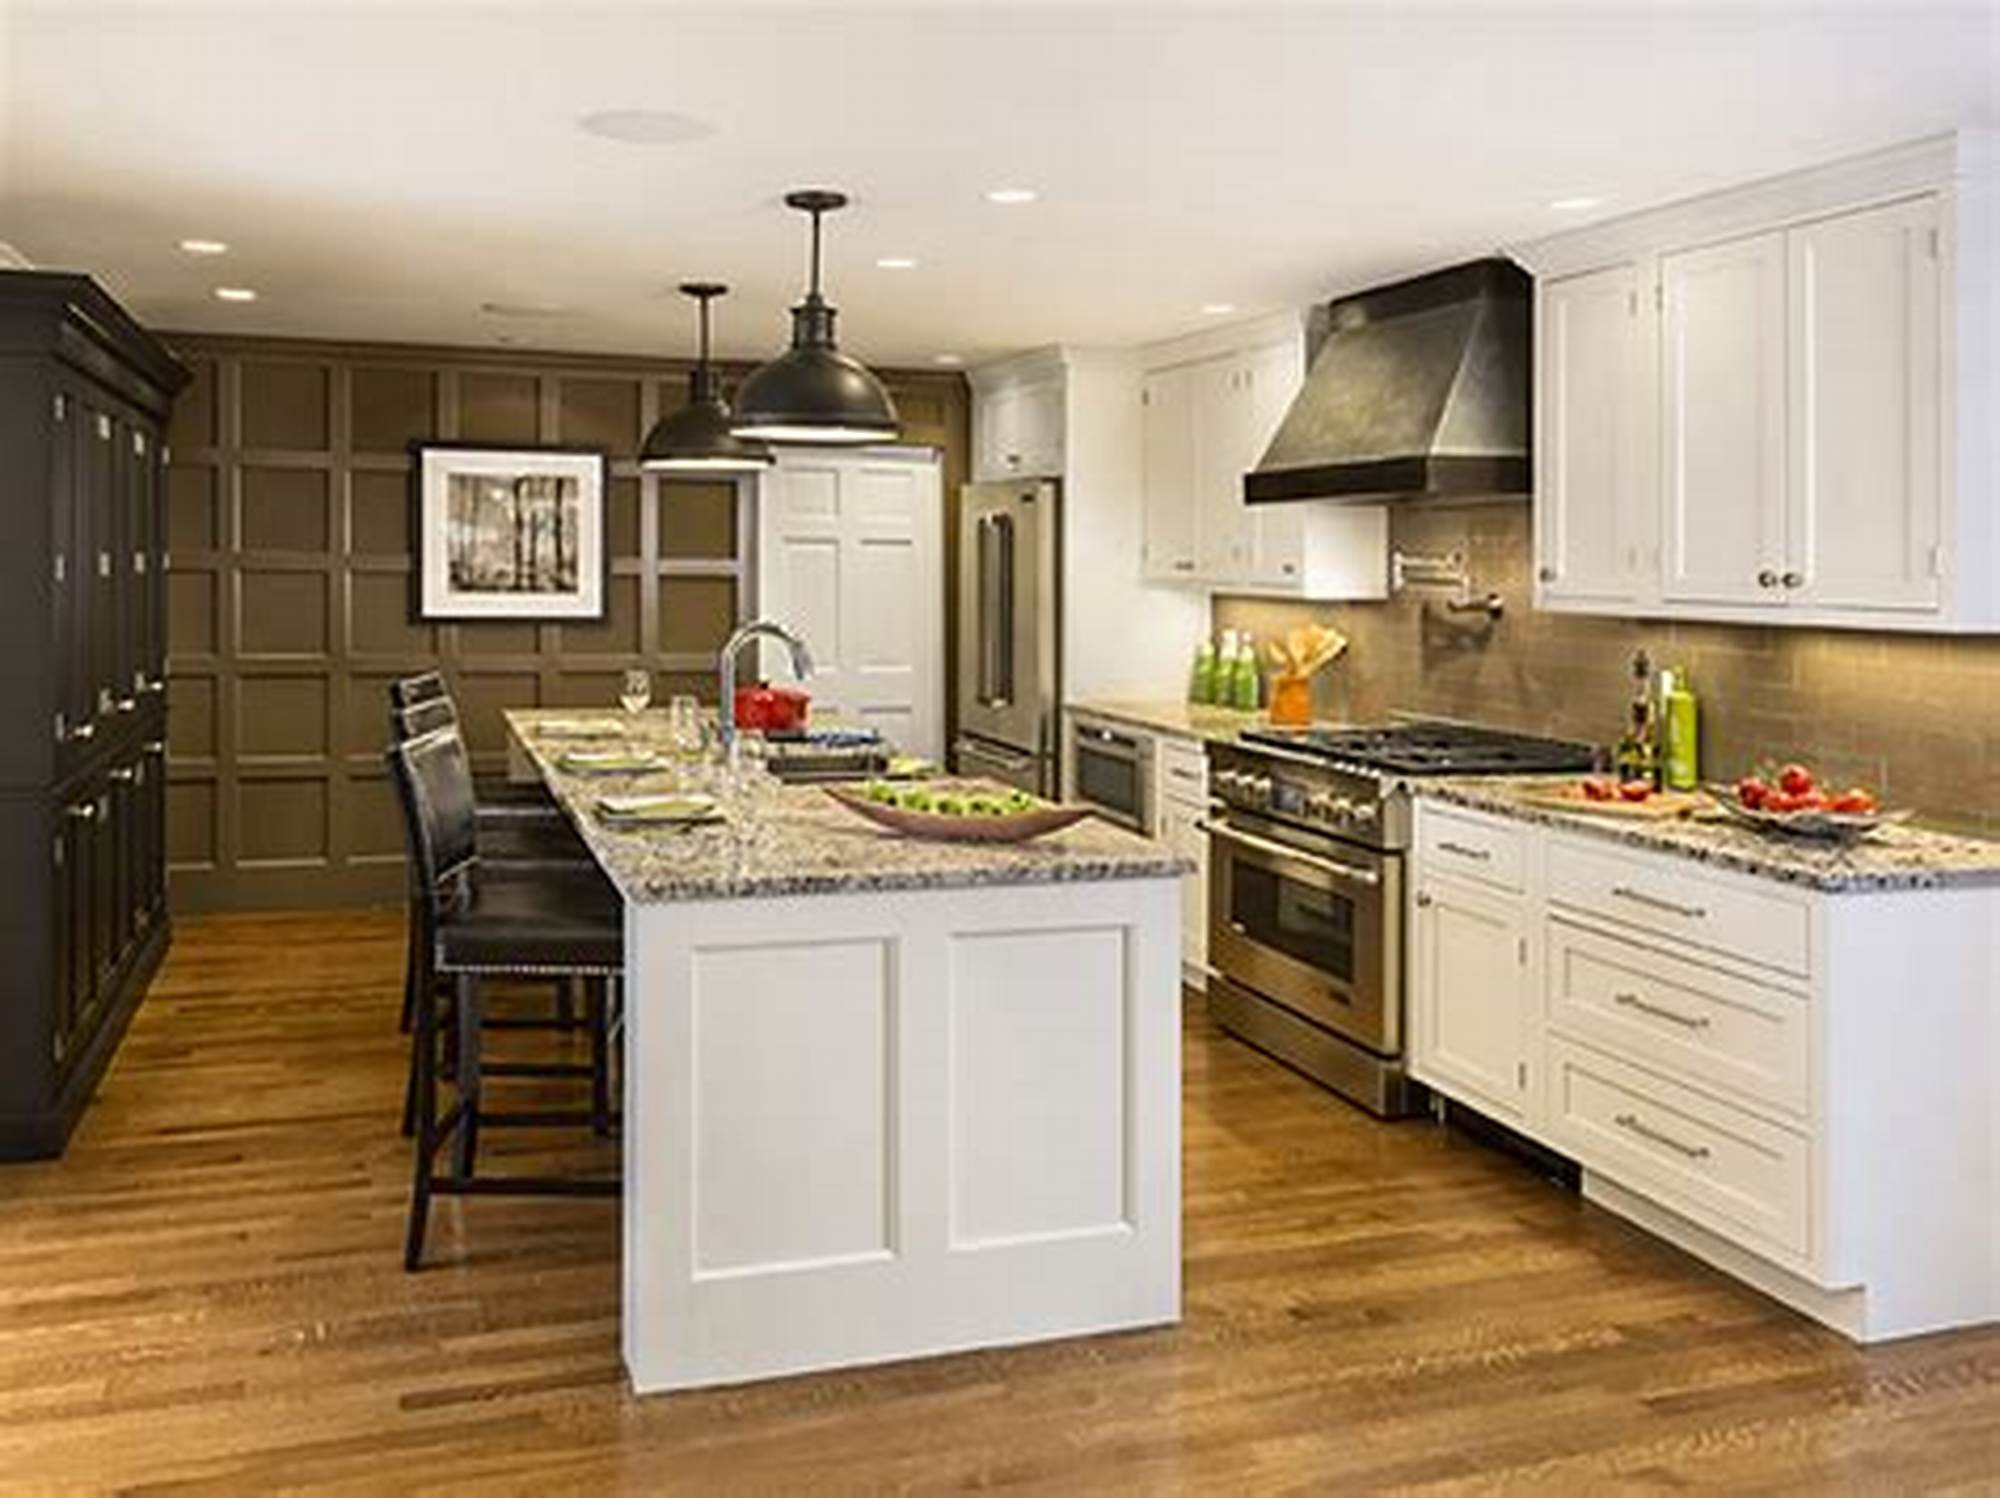 Apartment kitchen cabinets white shaker solid wood cabinets soft close in standard size